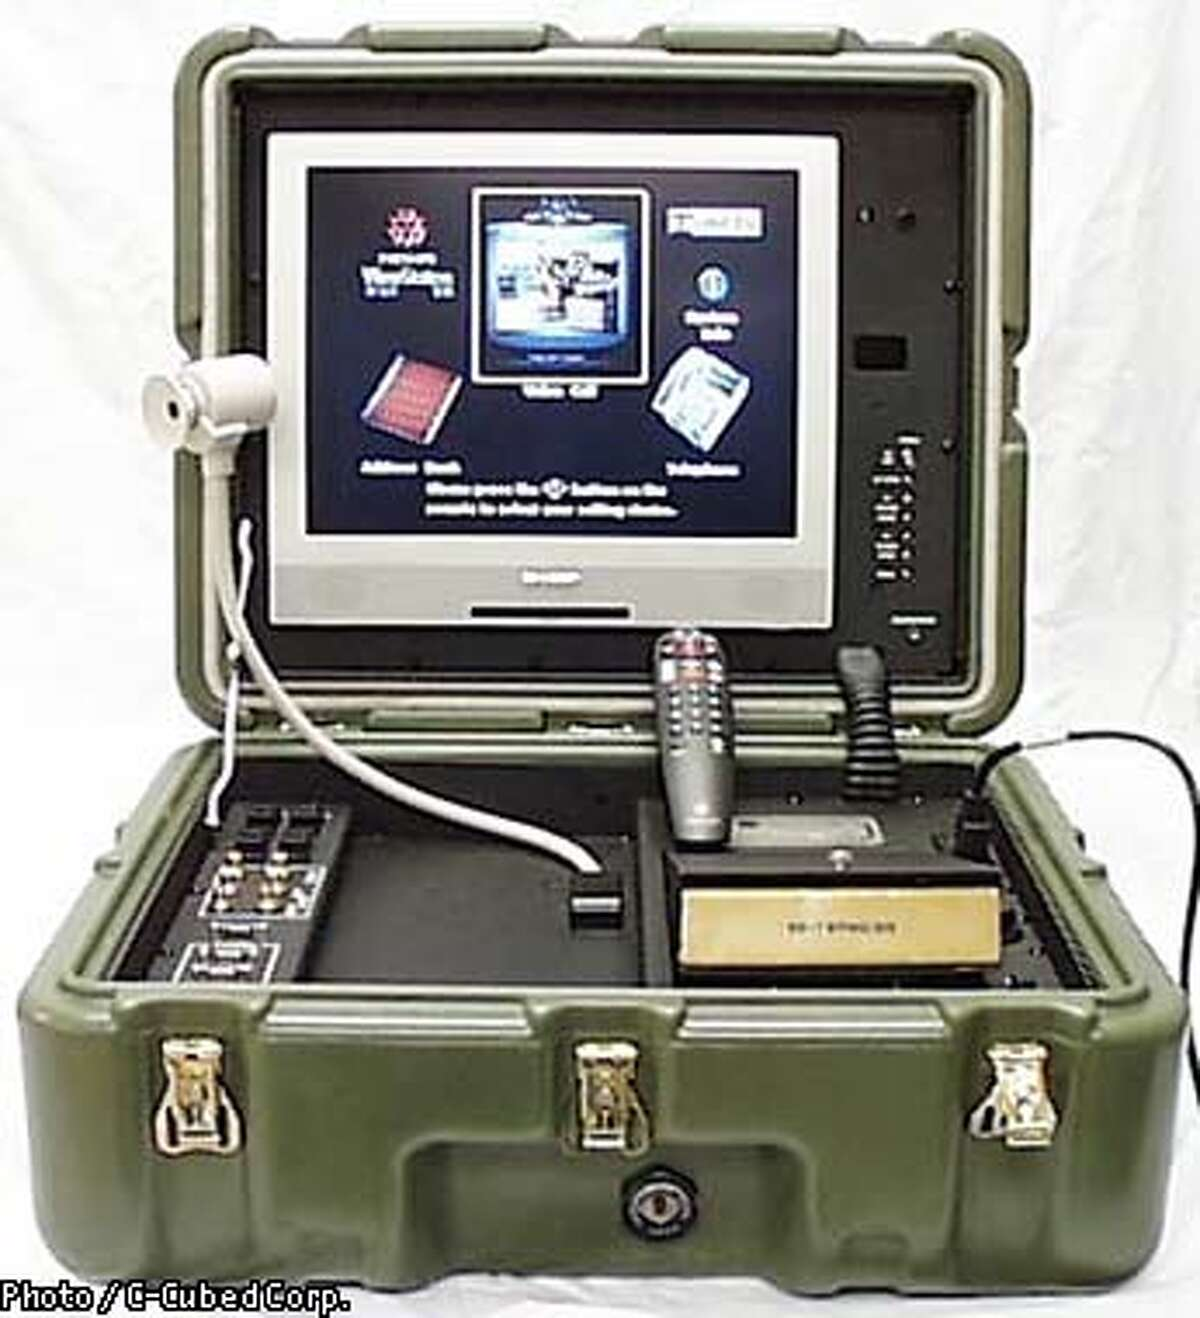 ViewCase Secure Transportable Video Teleconferencing System, which was developed for the U.S. military using technology from Polycom Corp., a Pleasanton firm that has the largest share of the corporate videoconferencing market. Photo / C-Cubed Corp.